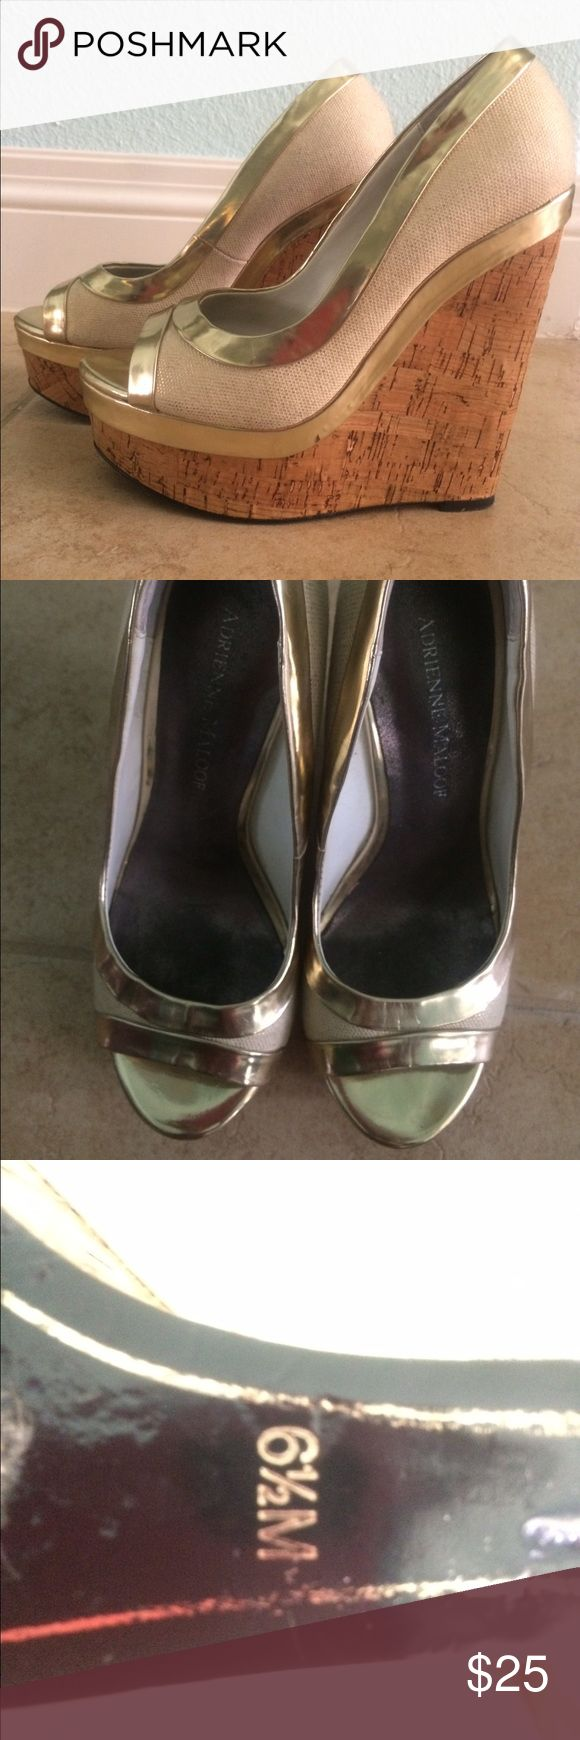 Adrienne maloof cream and gold wedges Adrienne maloof cream and metallic gold wedges in excellent condition and so adorable! Worn maybe twice. Shoes Wedges